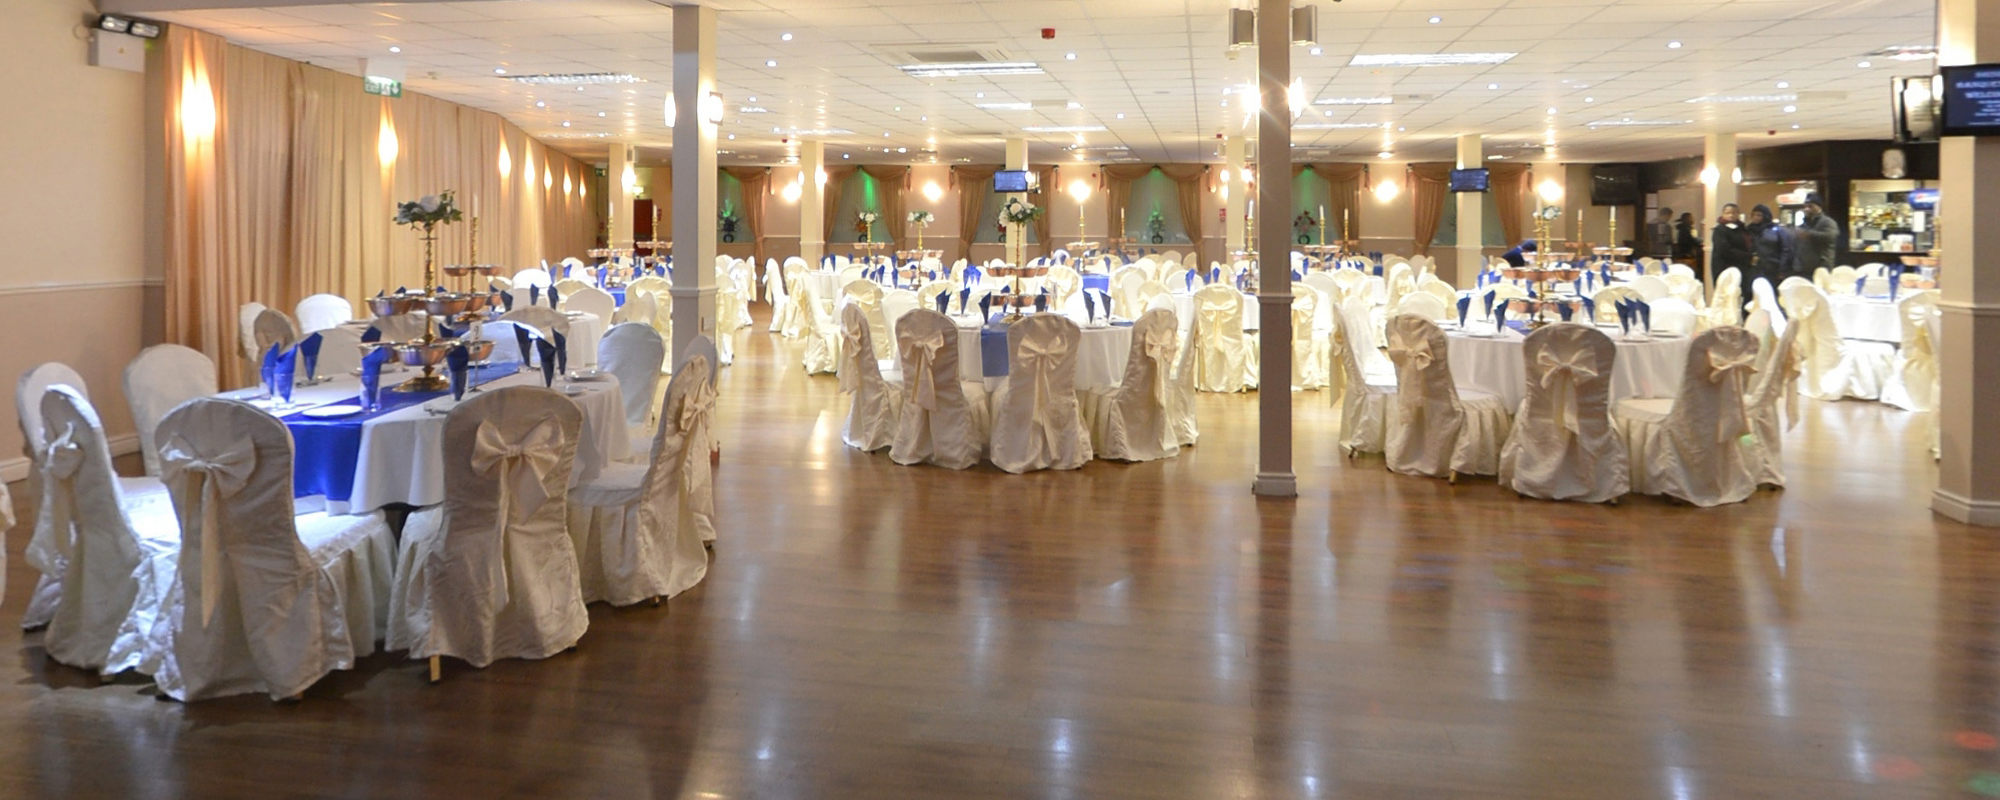 Wedding Hall in Willenhall West Midlands